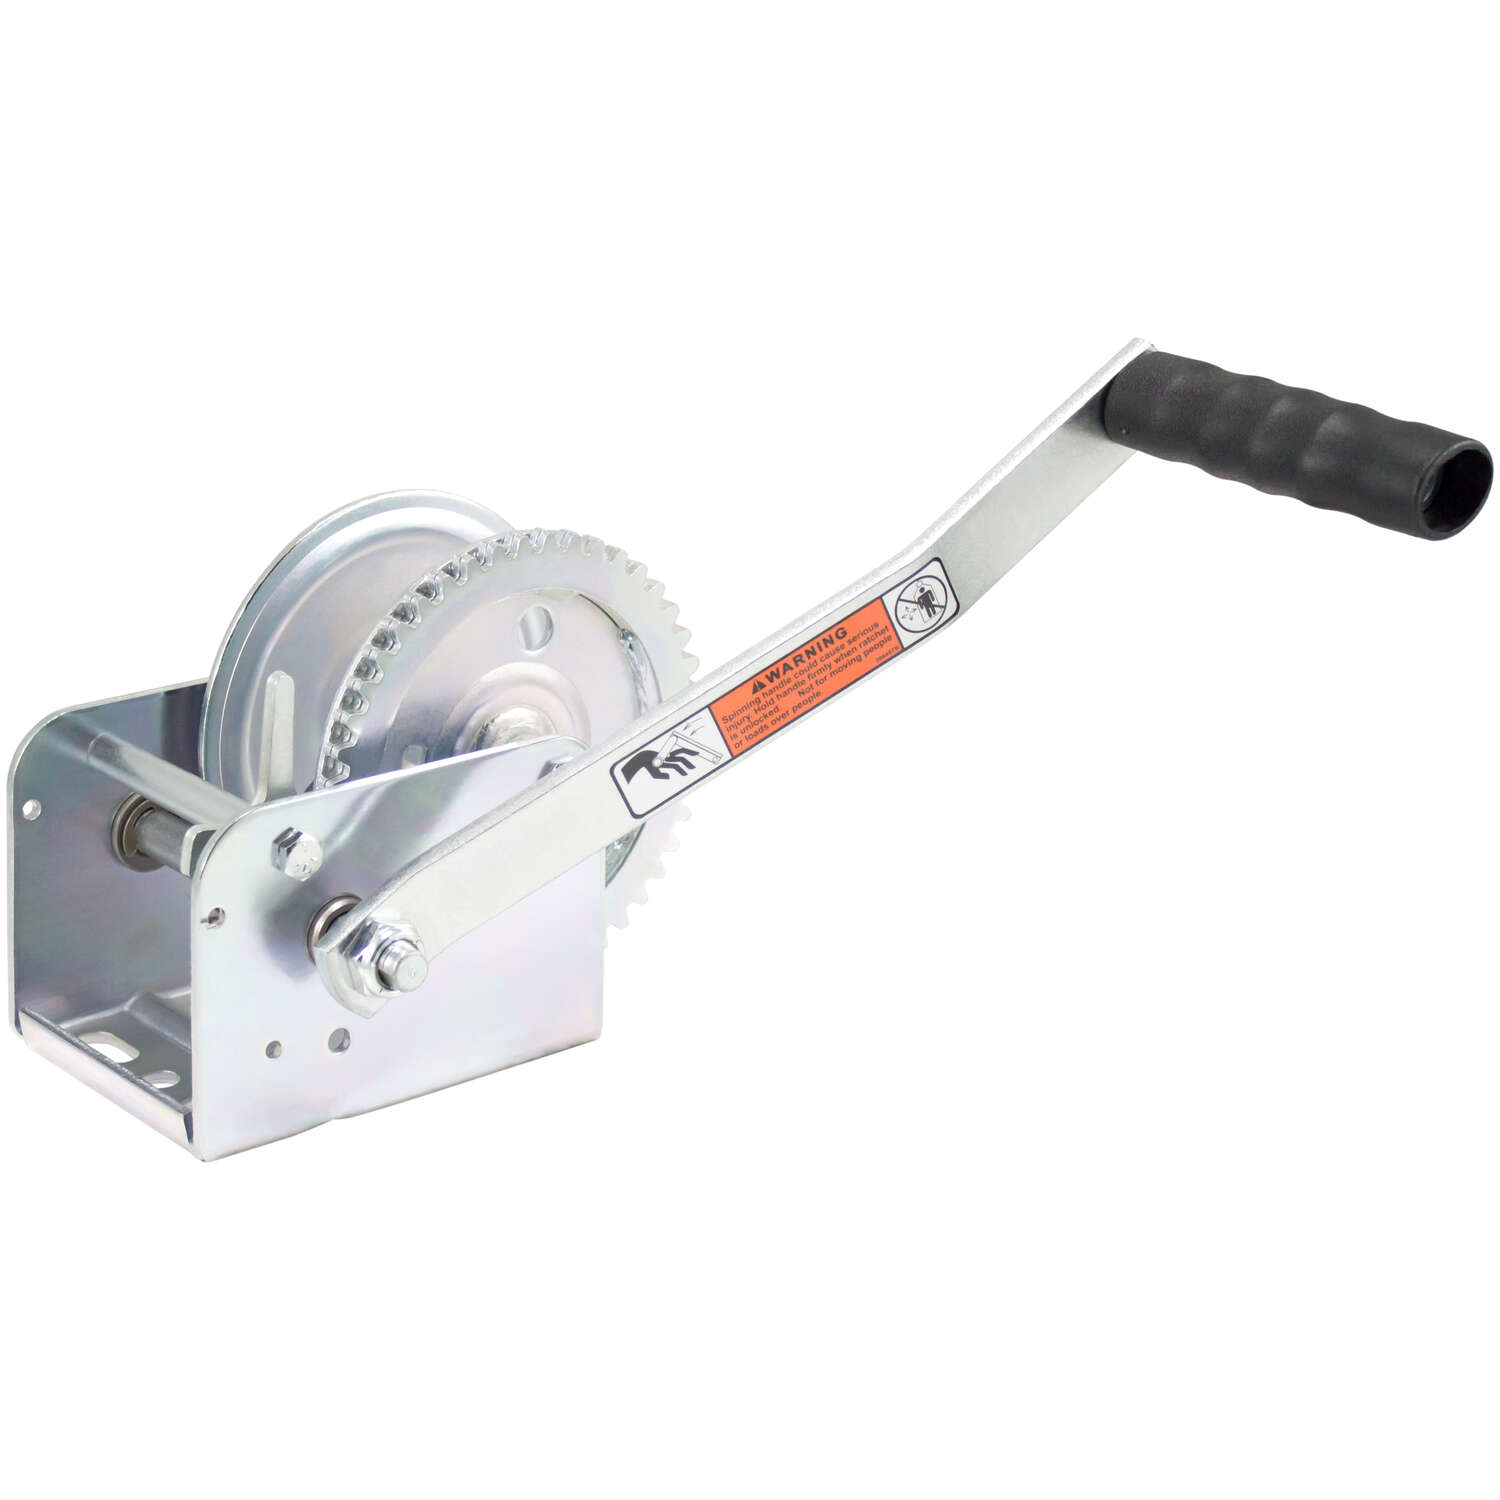 Dutton-Lainson  Steel  Ratchet Winch  1400